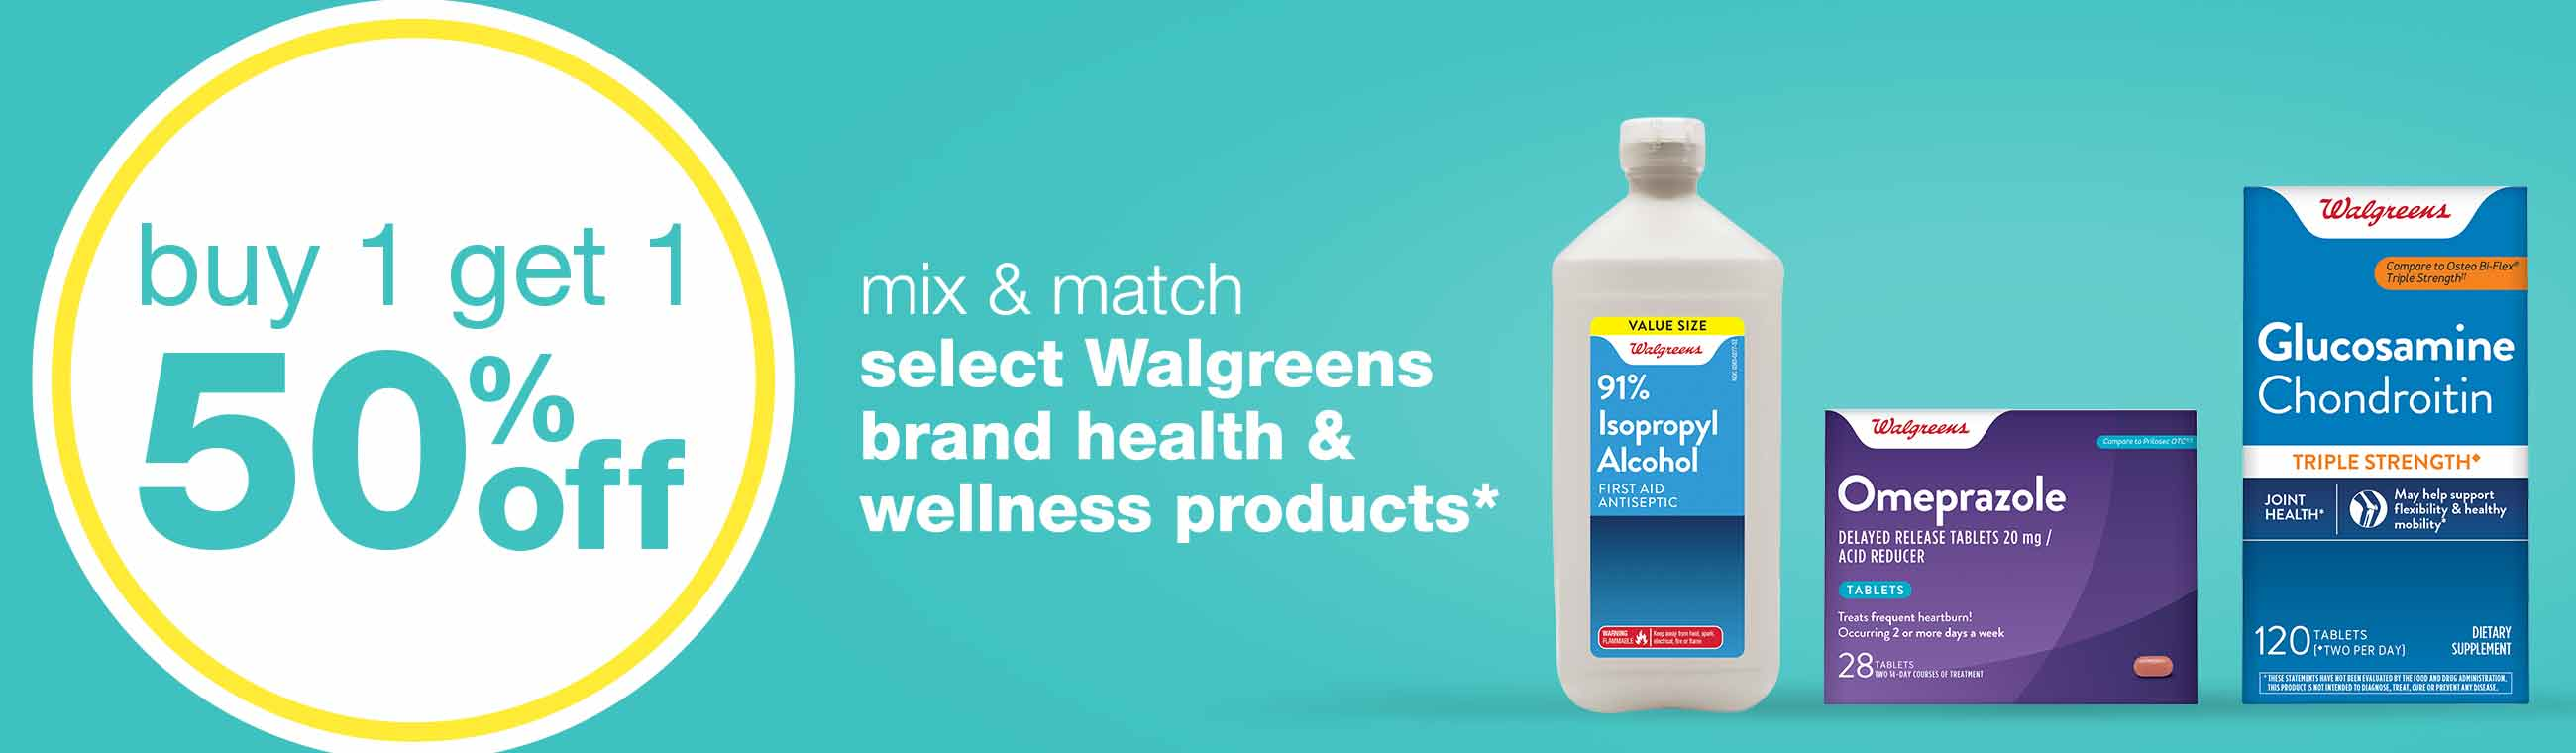 Buy 1 get 1 50% off select Walgreens brand health & wellness products.* Mix & match. Shop now.